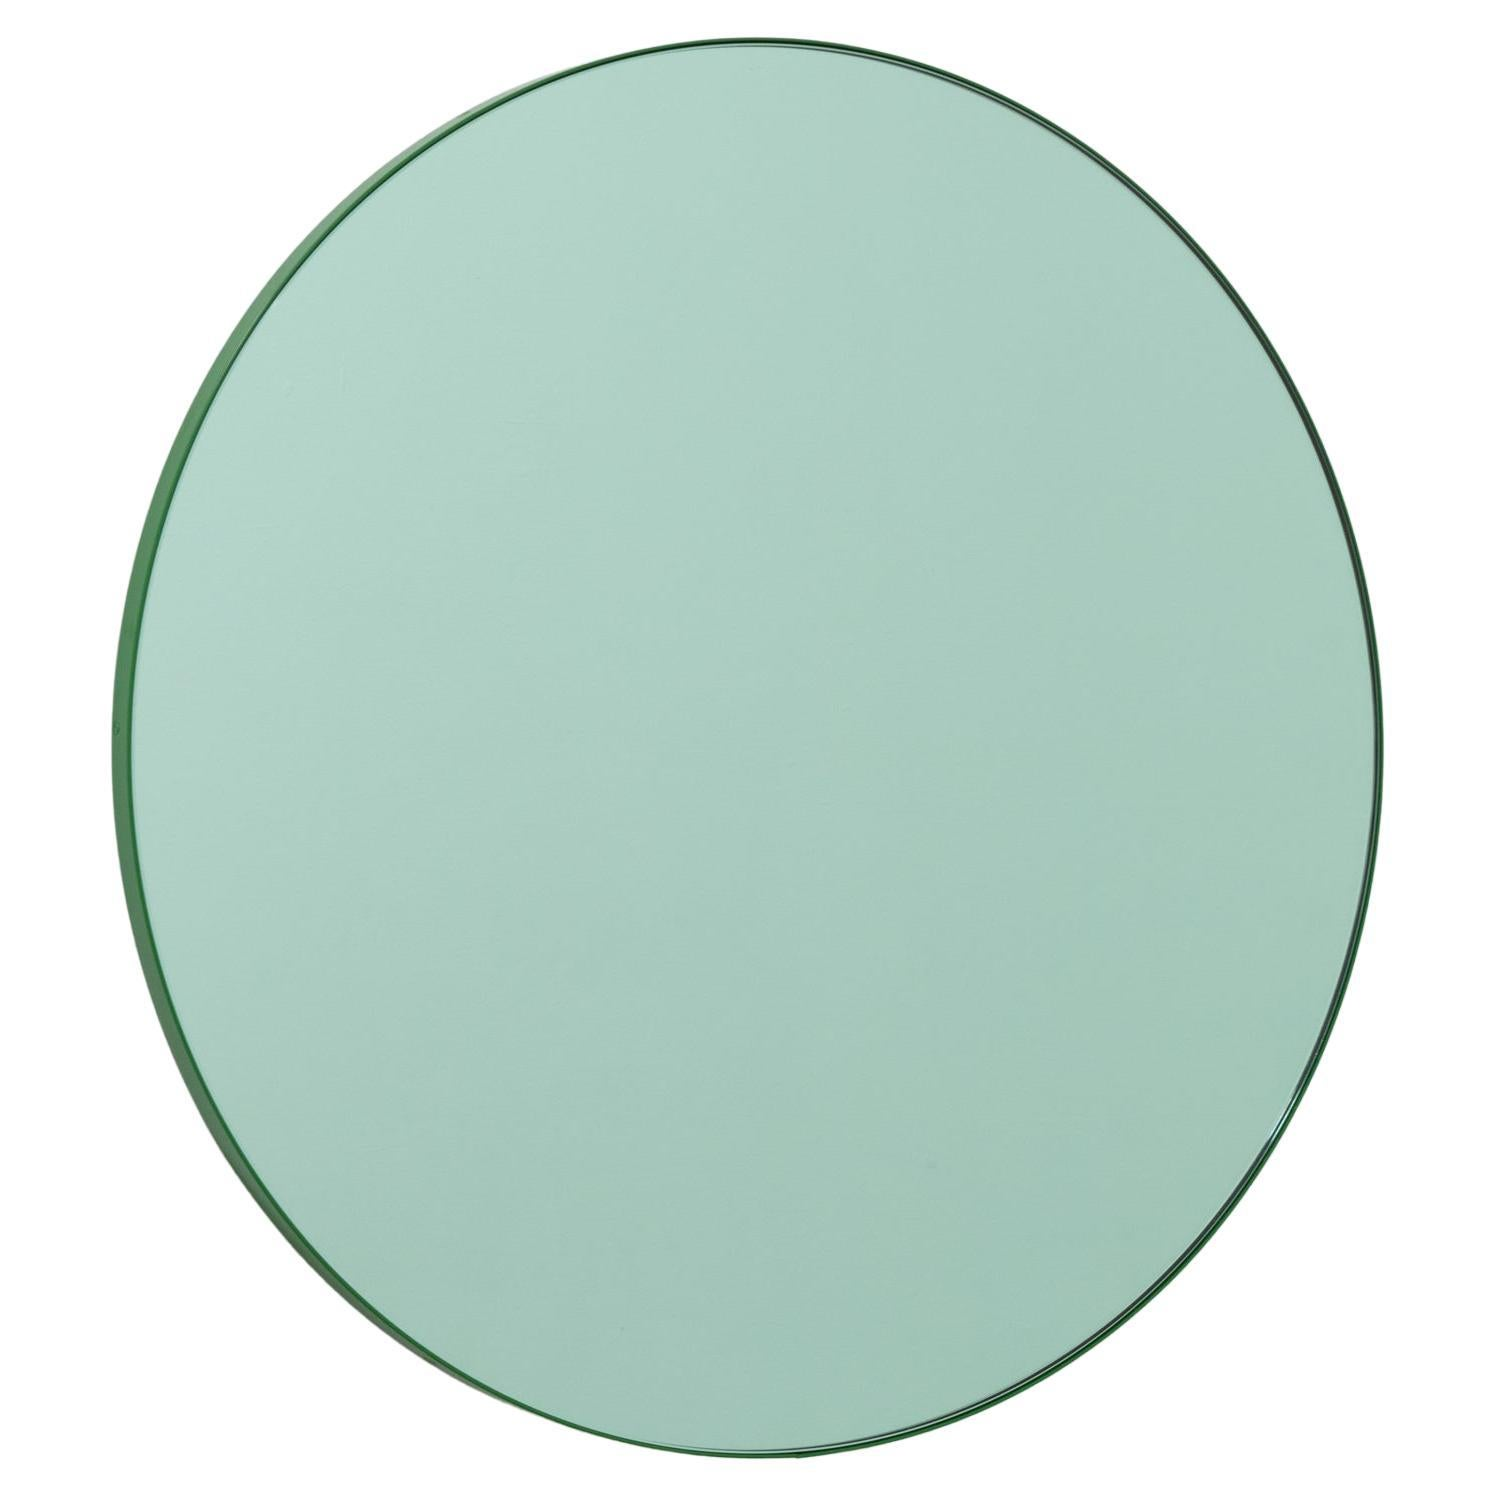 Orbis™ Green Contemporary Handcrafted Round Mirror with Green Frame, Regular